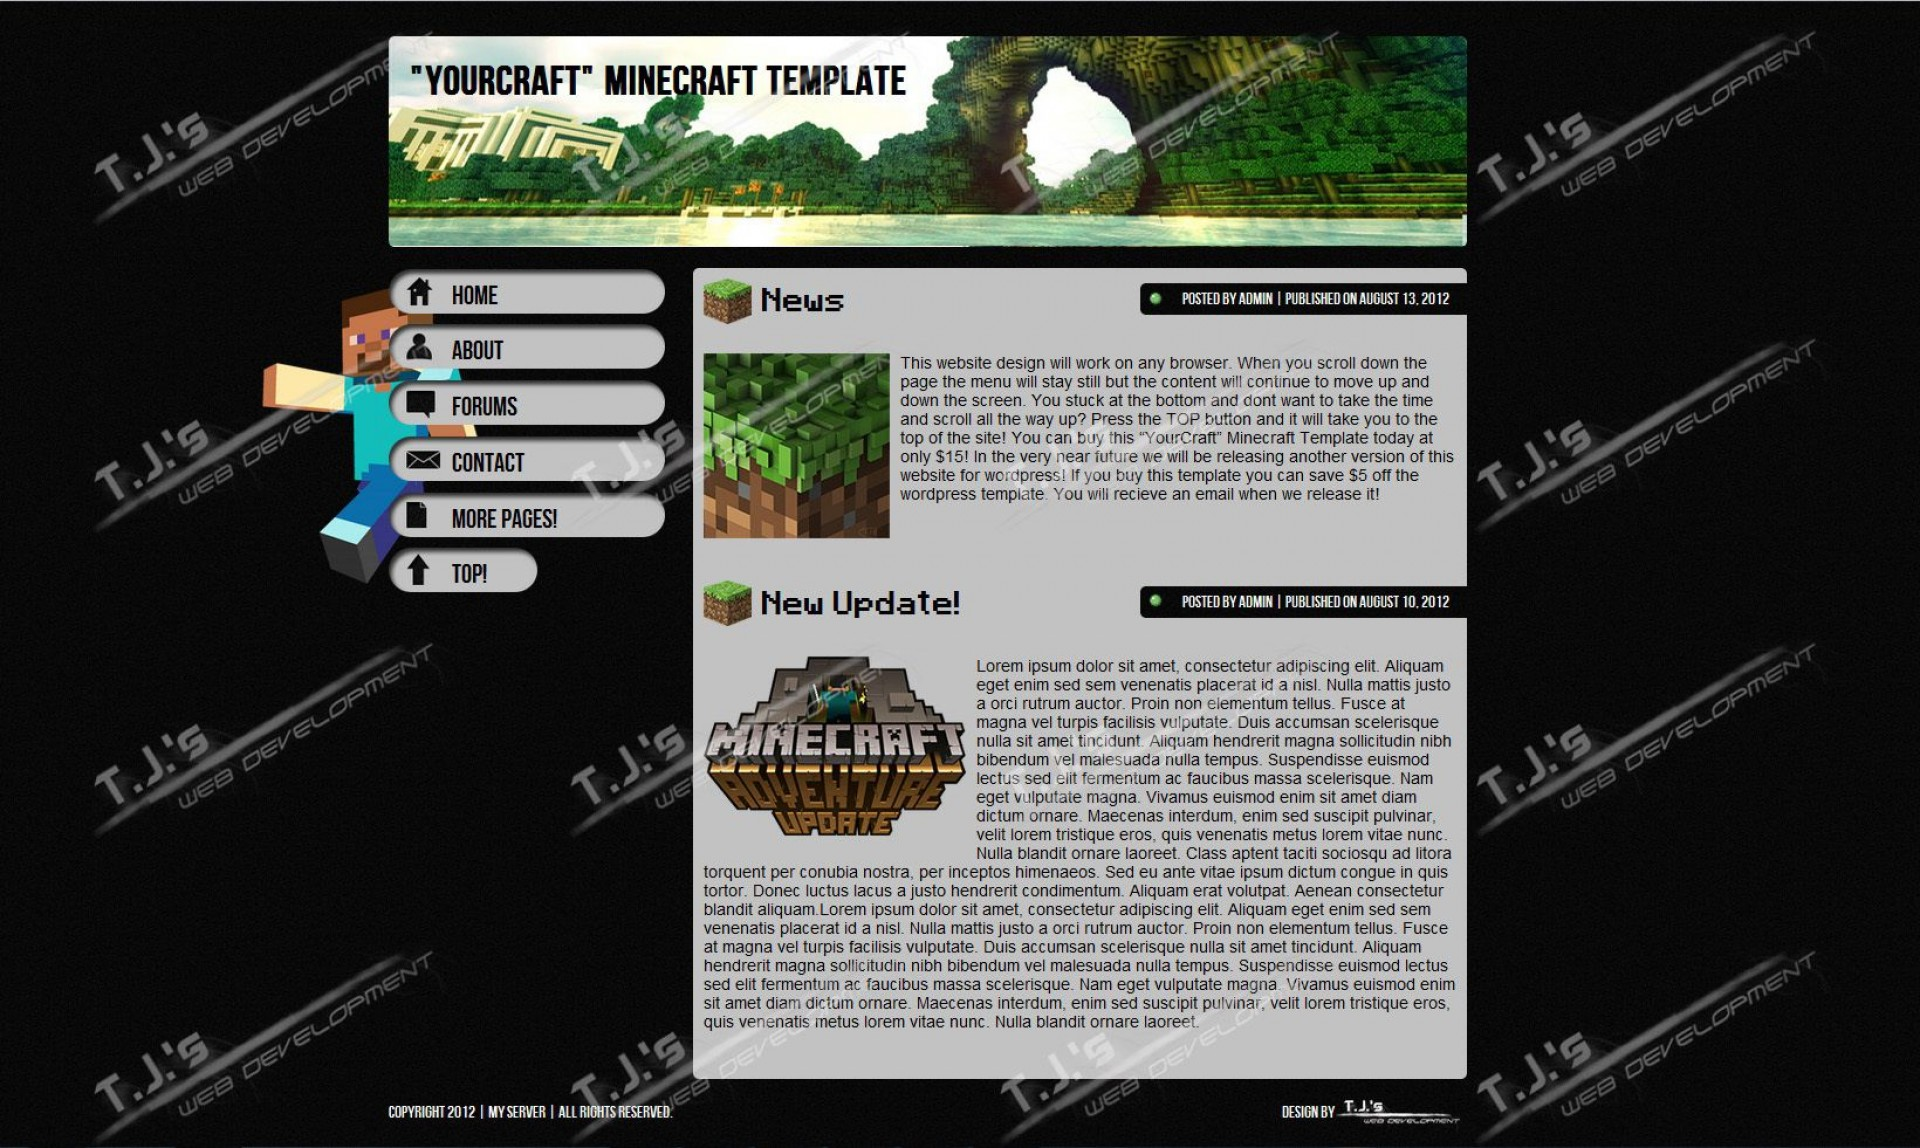 004 Simple Minecraft Website Template Html Free Download Concept 1920